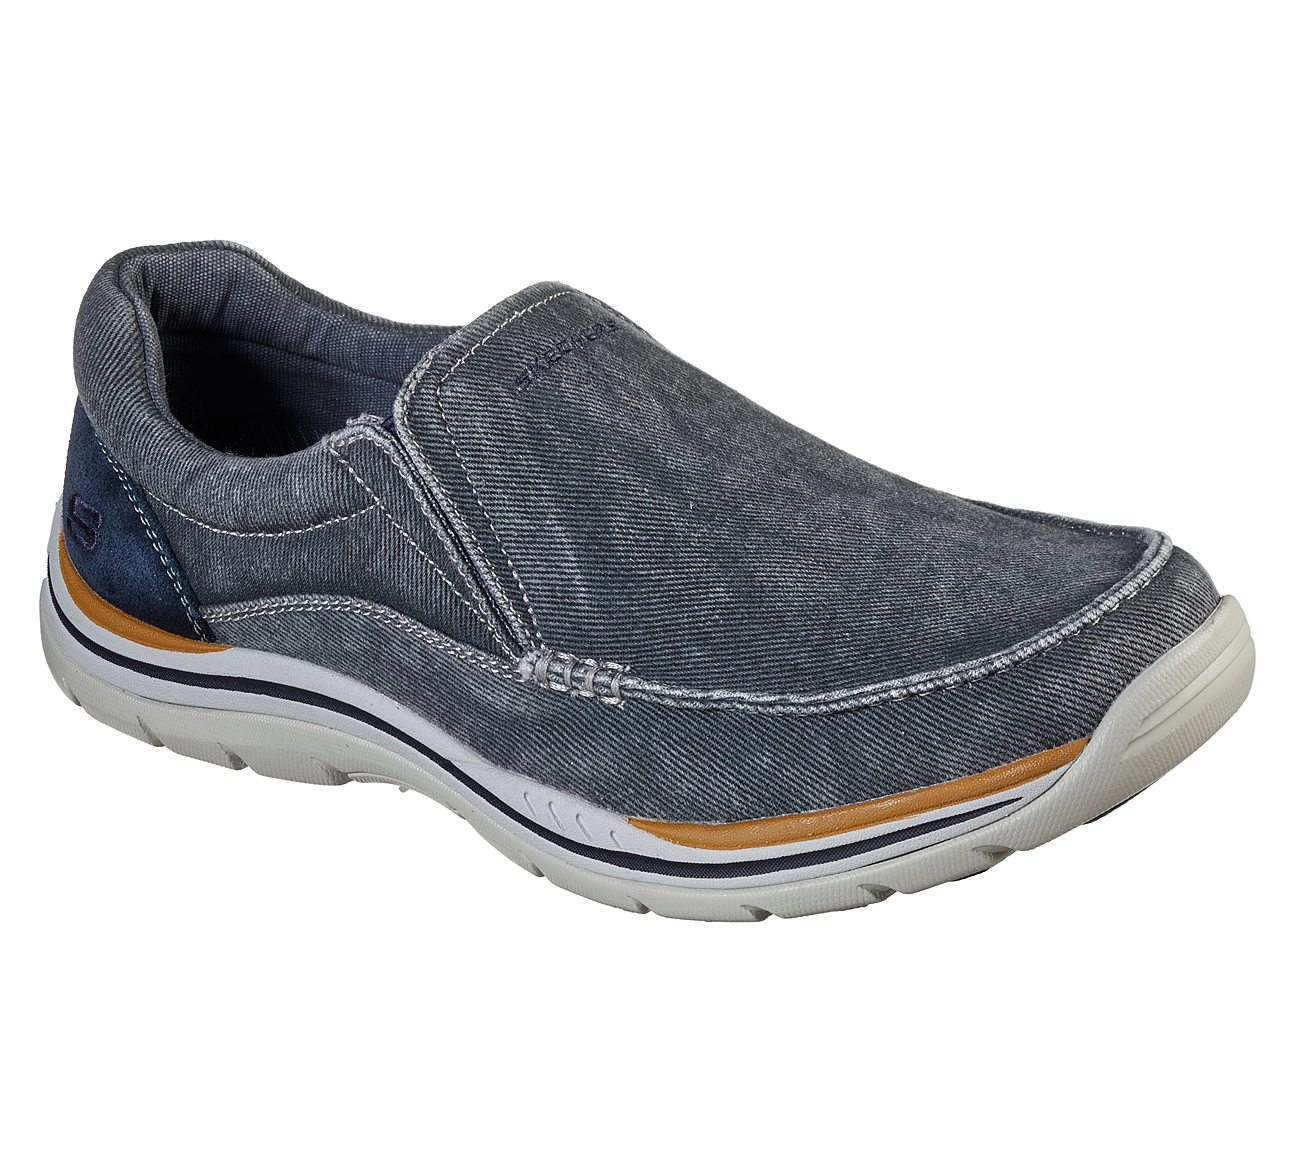 7747e6fa Buy SKECHERS Relaxed Fit: Expected - Avillo SKECHERS Modern Comfort ...